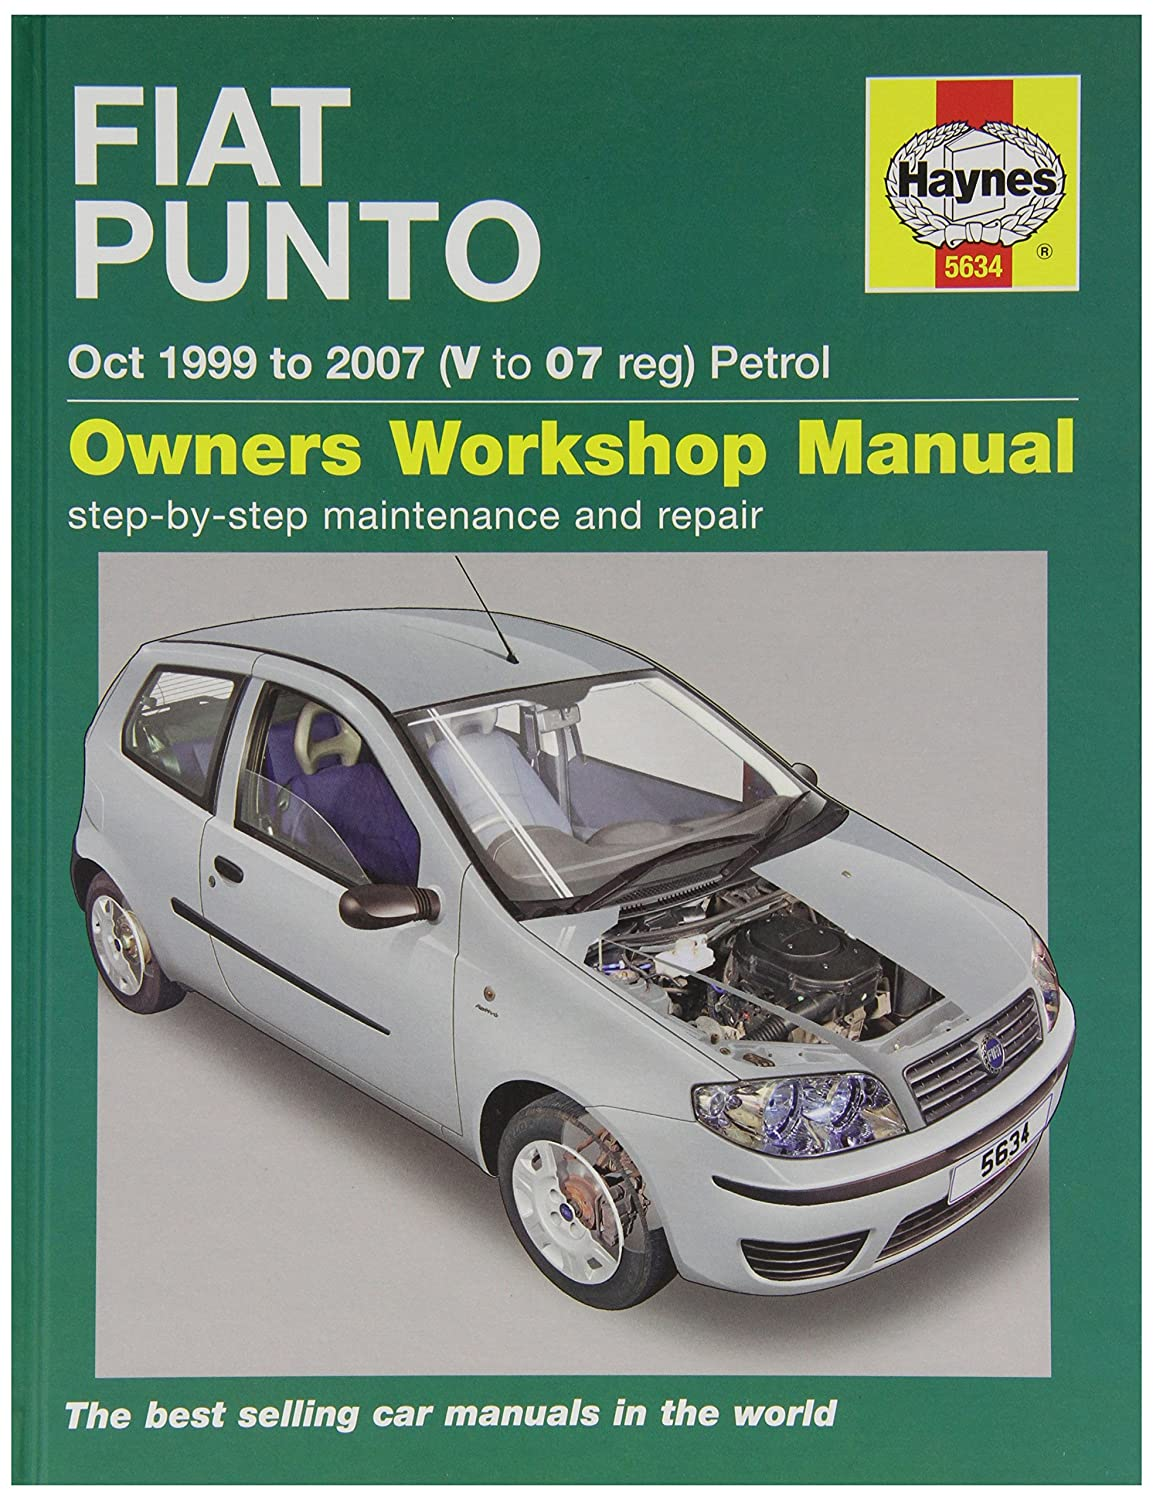 Haynes 5634 Service and Repair Workshop Manual: Amazon.co.uk: Car &  Motorbike